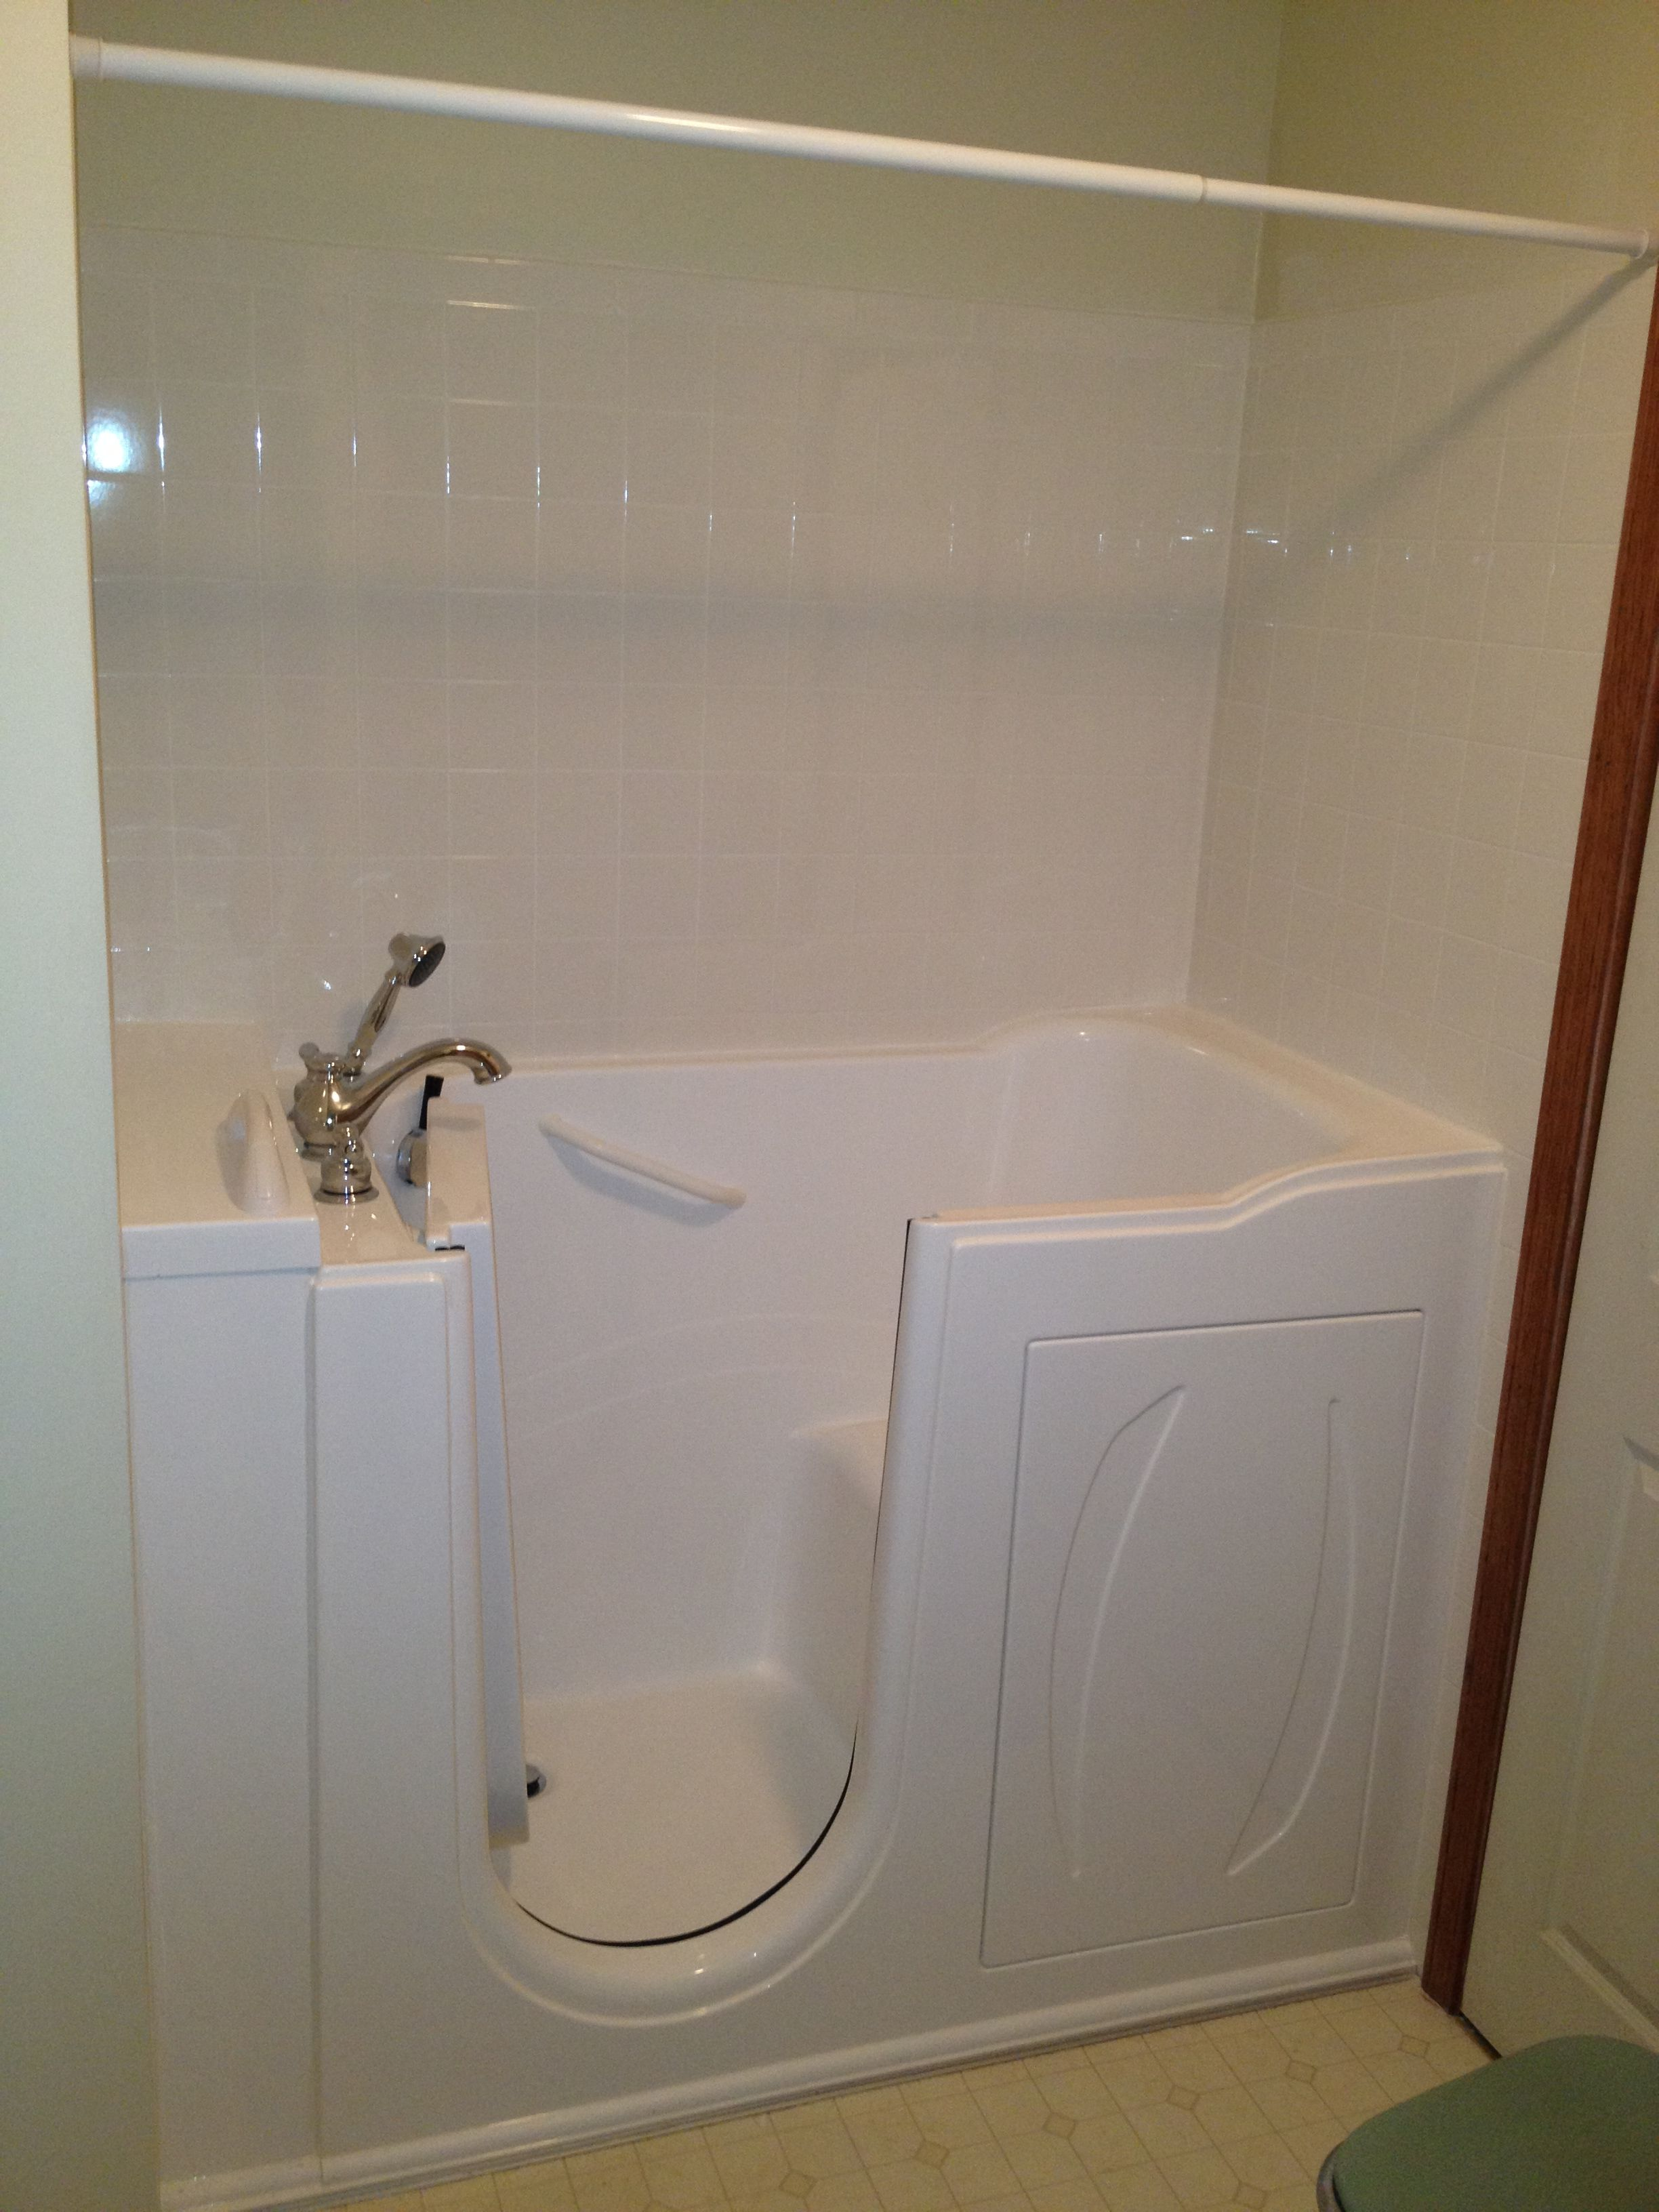 Serenity Walk In Bathtubs Come With An Adjule Shower Slide Bar The